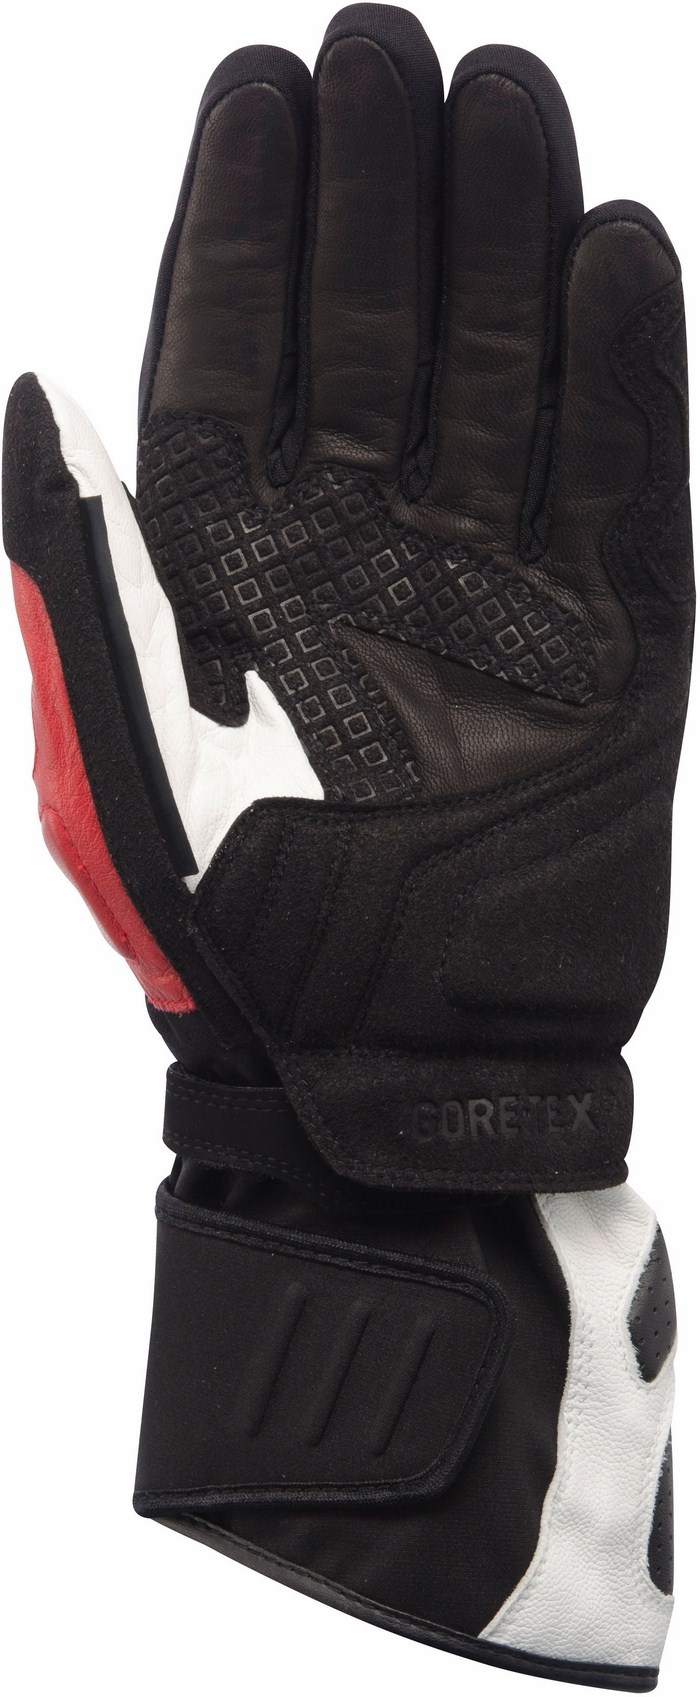 Alpinestars GT-S X-Trafit gloves black white red